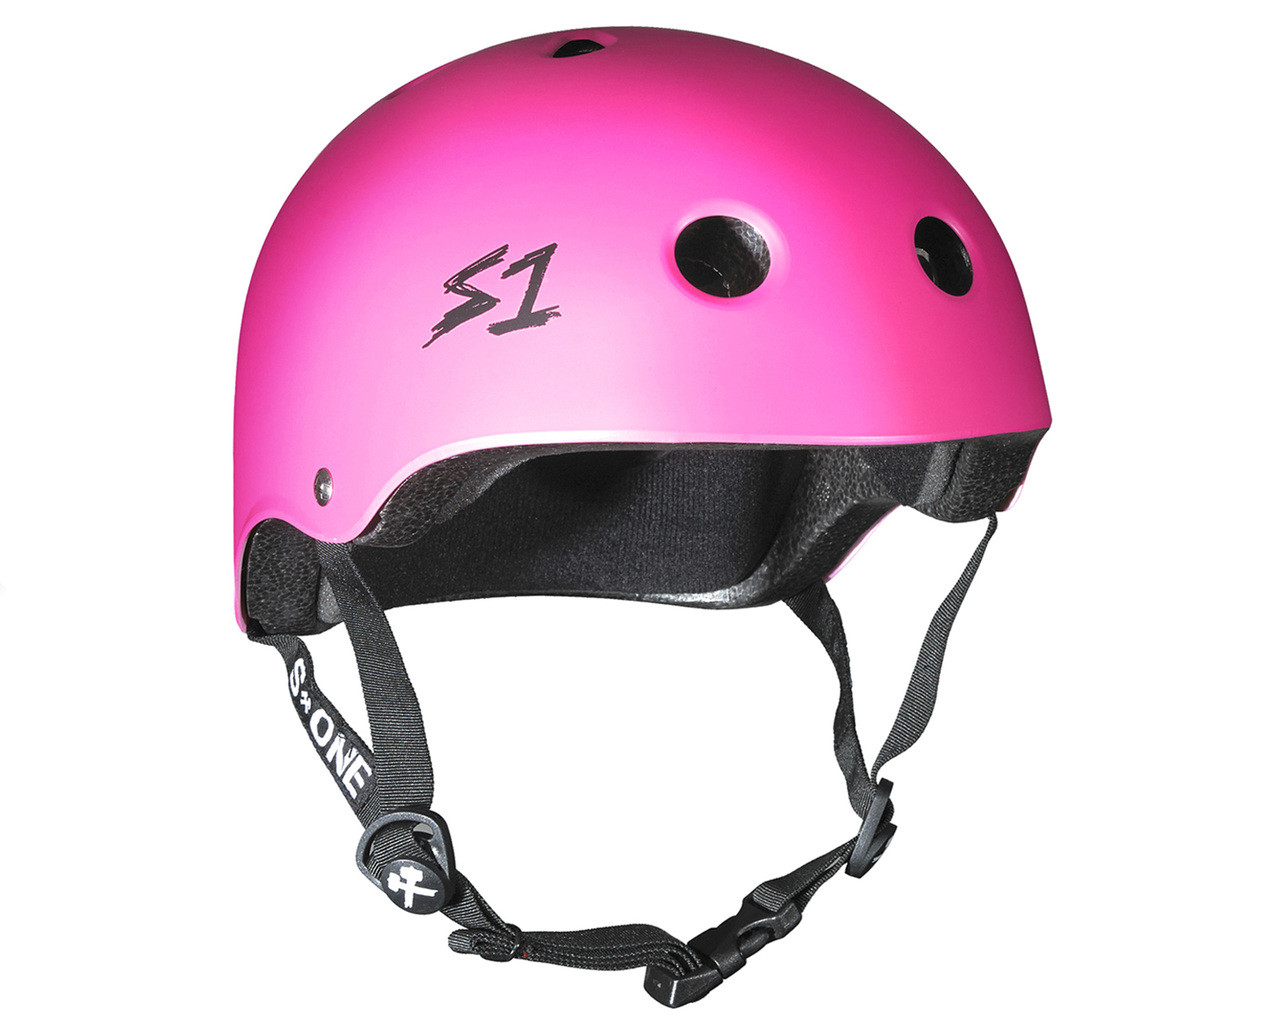 Scooter Hut S1 Helmet Lit Collab Hot Pink Matte